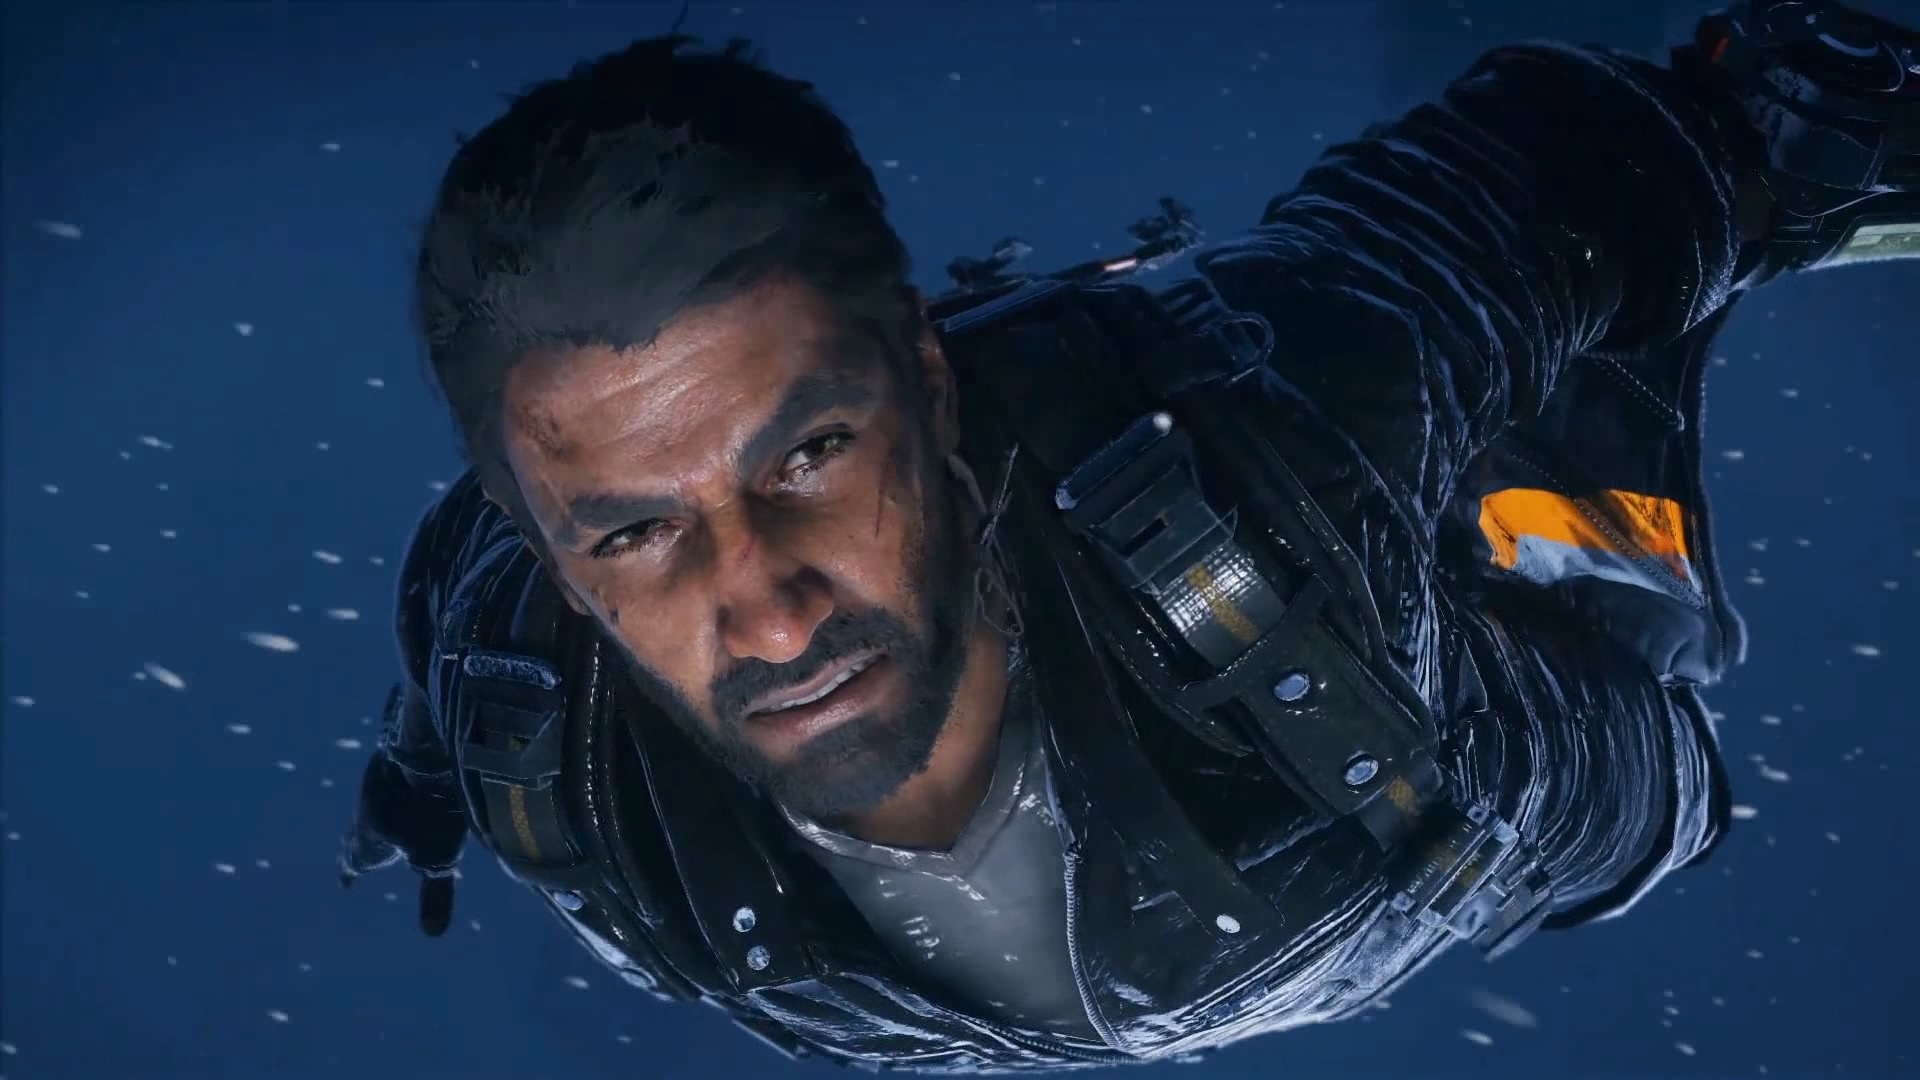 Review - Just Cause 4 (PS4)